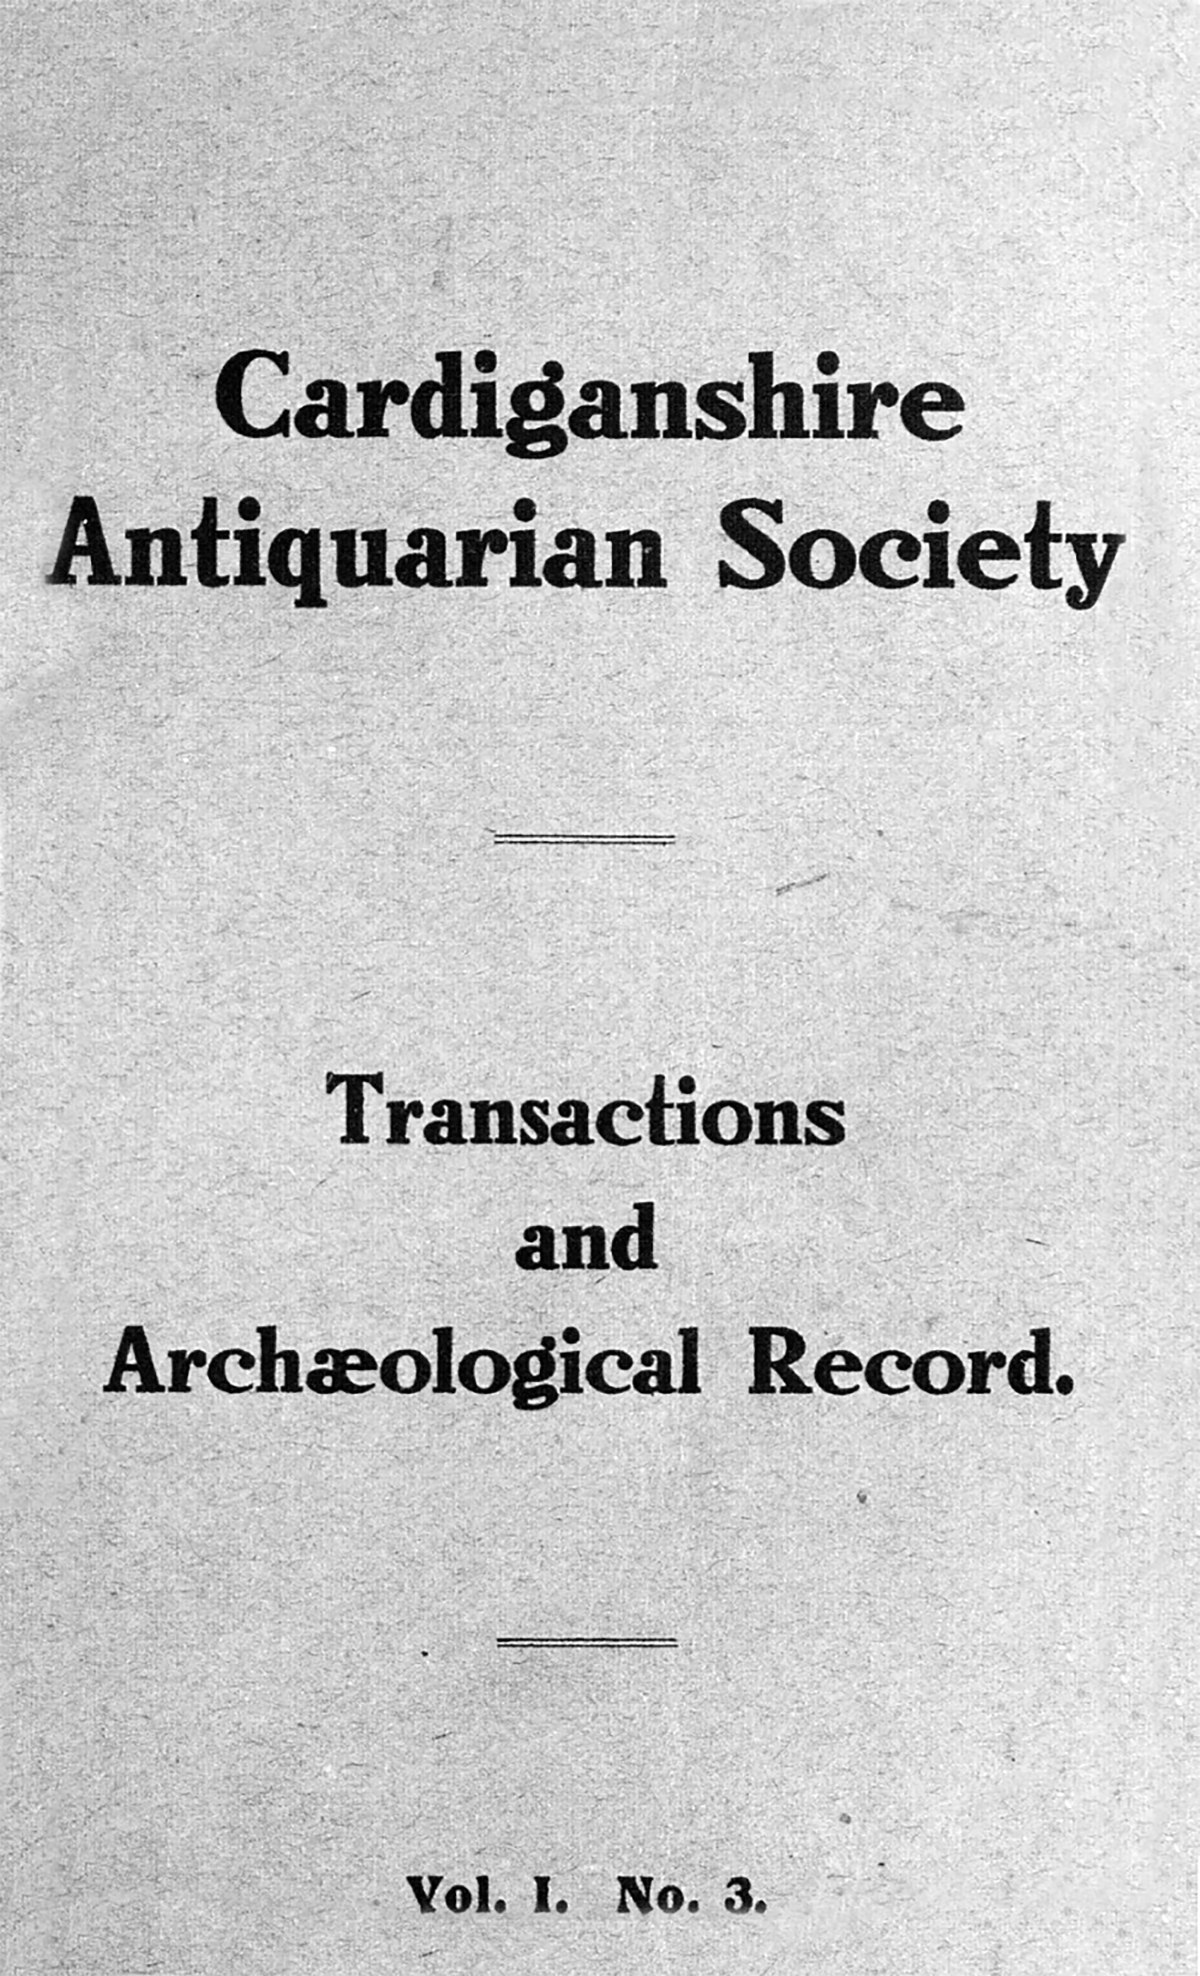 Transactions of the Cardiganshire Antiquarian Society and archaeological Record - Volume 1 Part 3